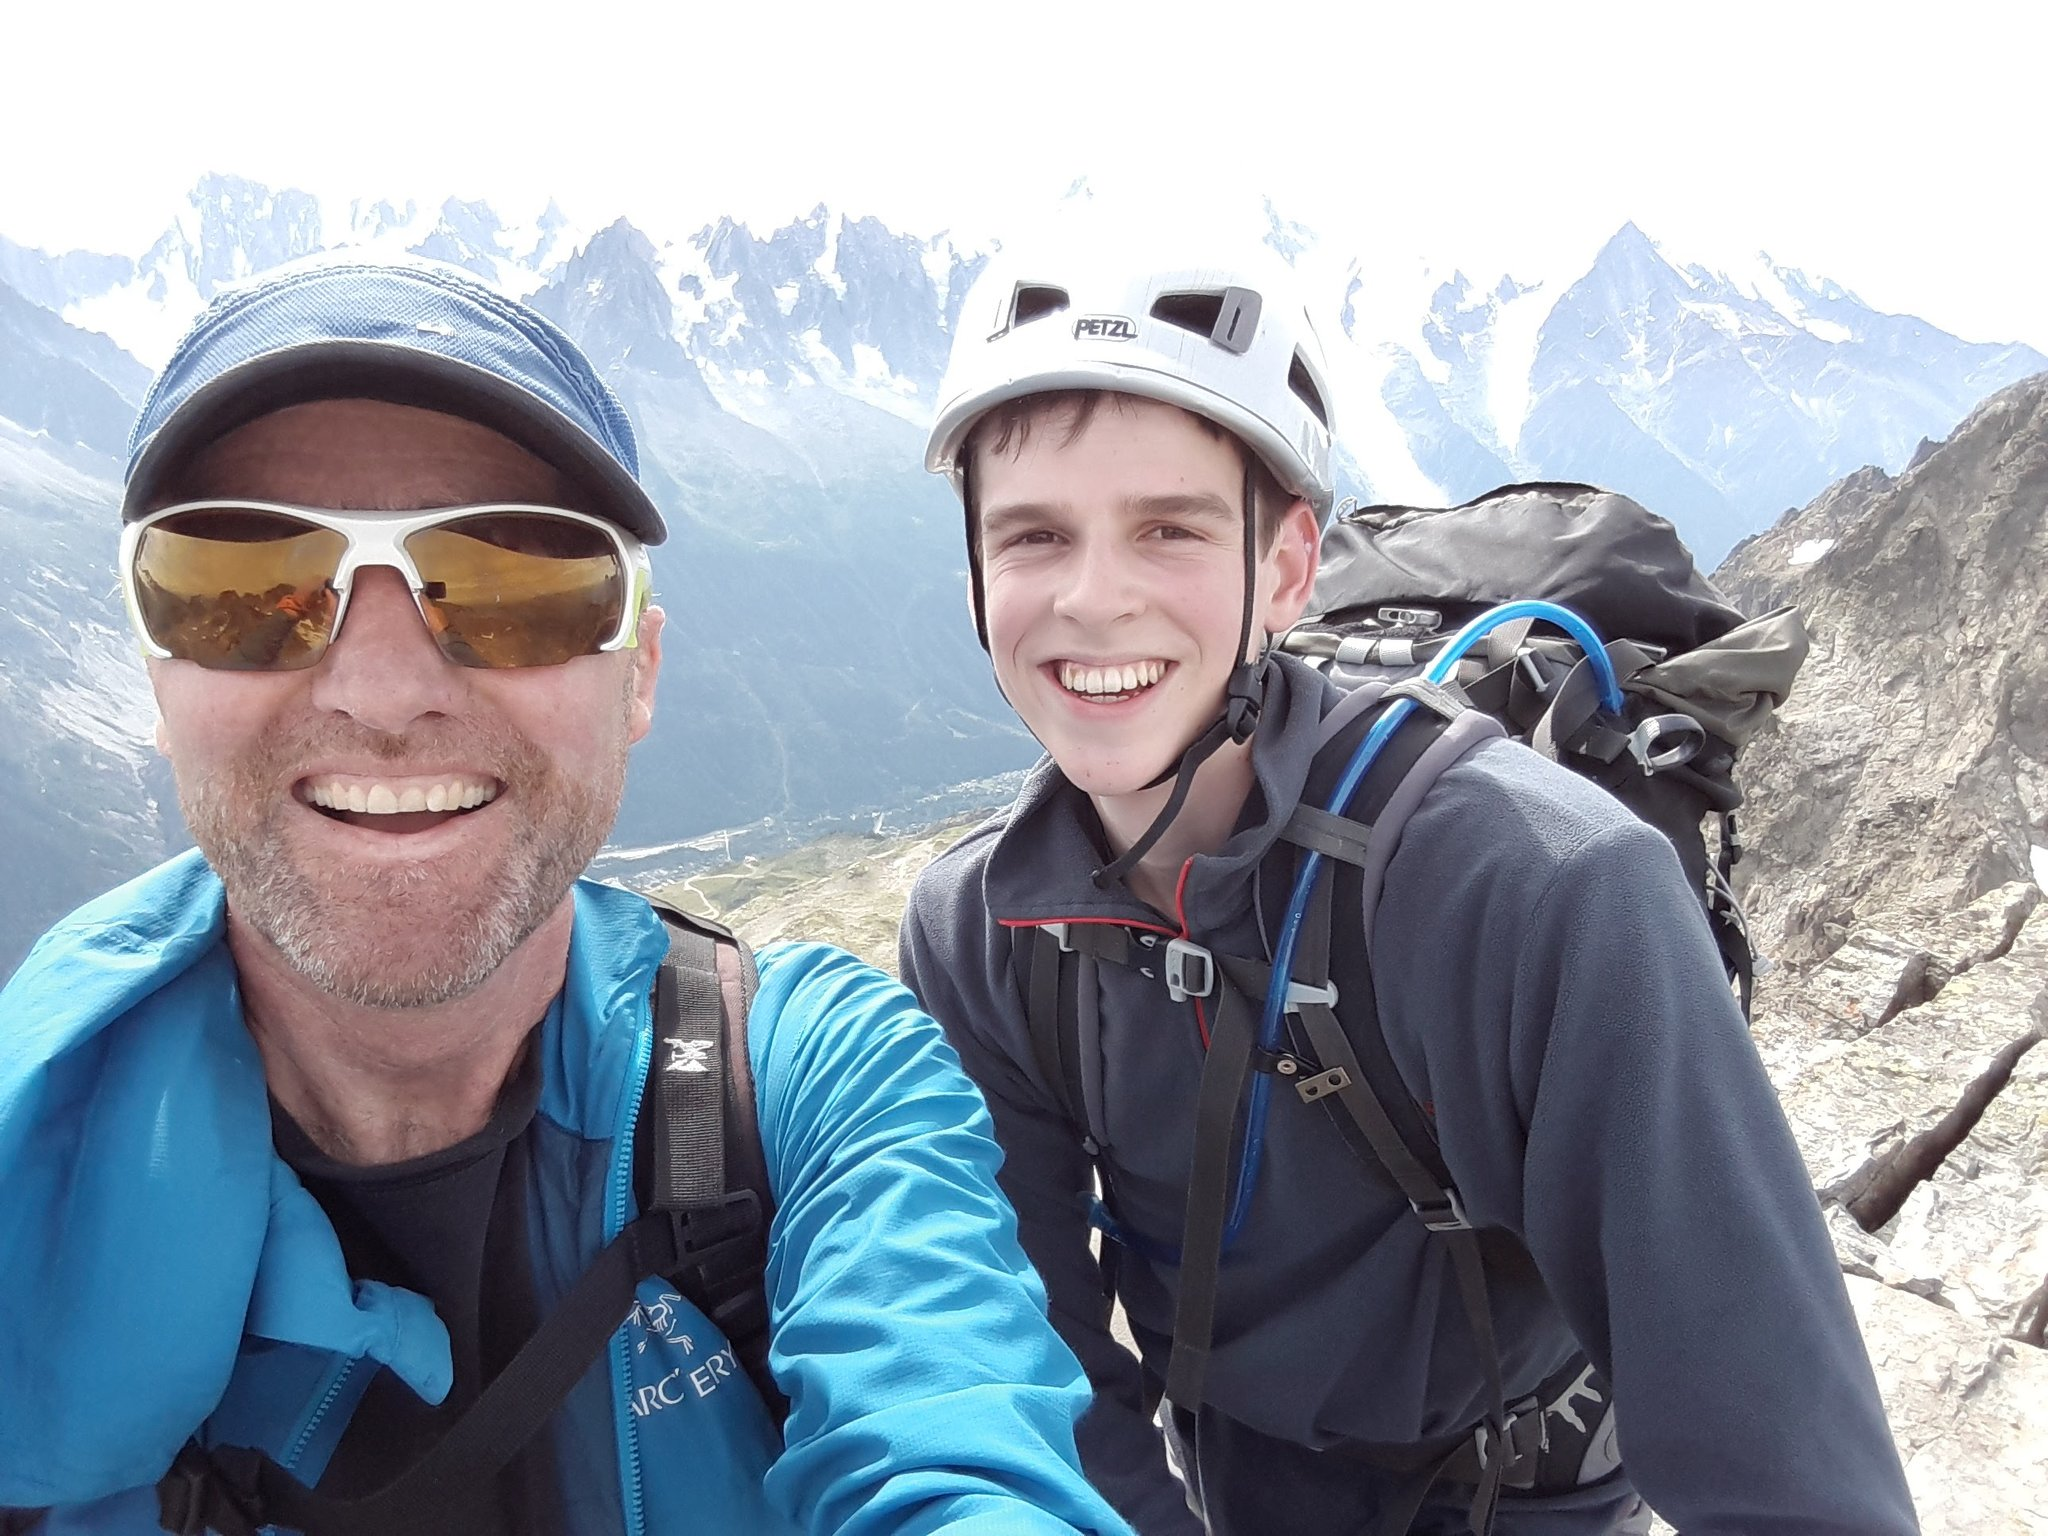 Climbing in the Aiguilles Rouges with Matt